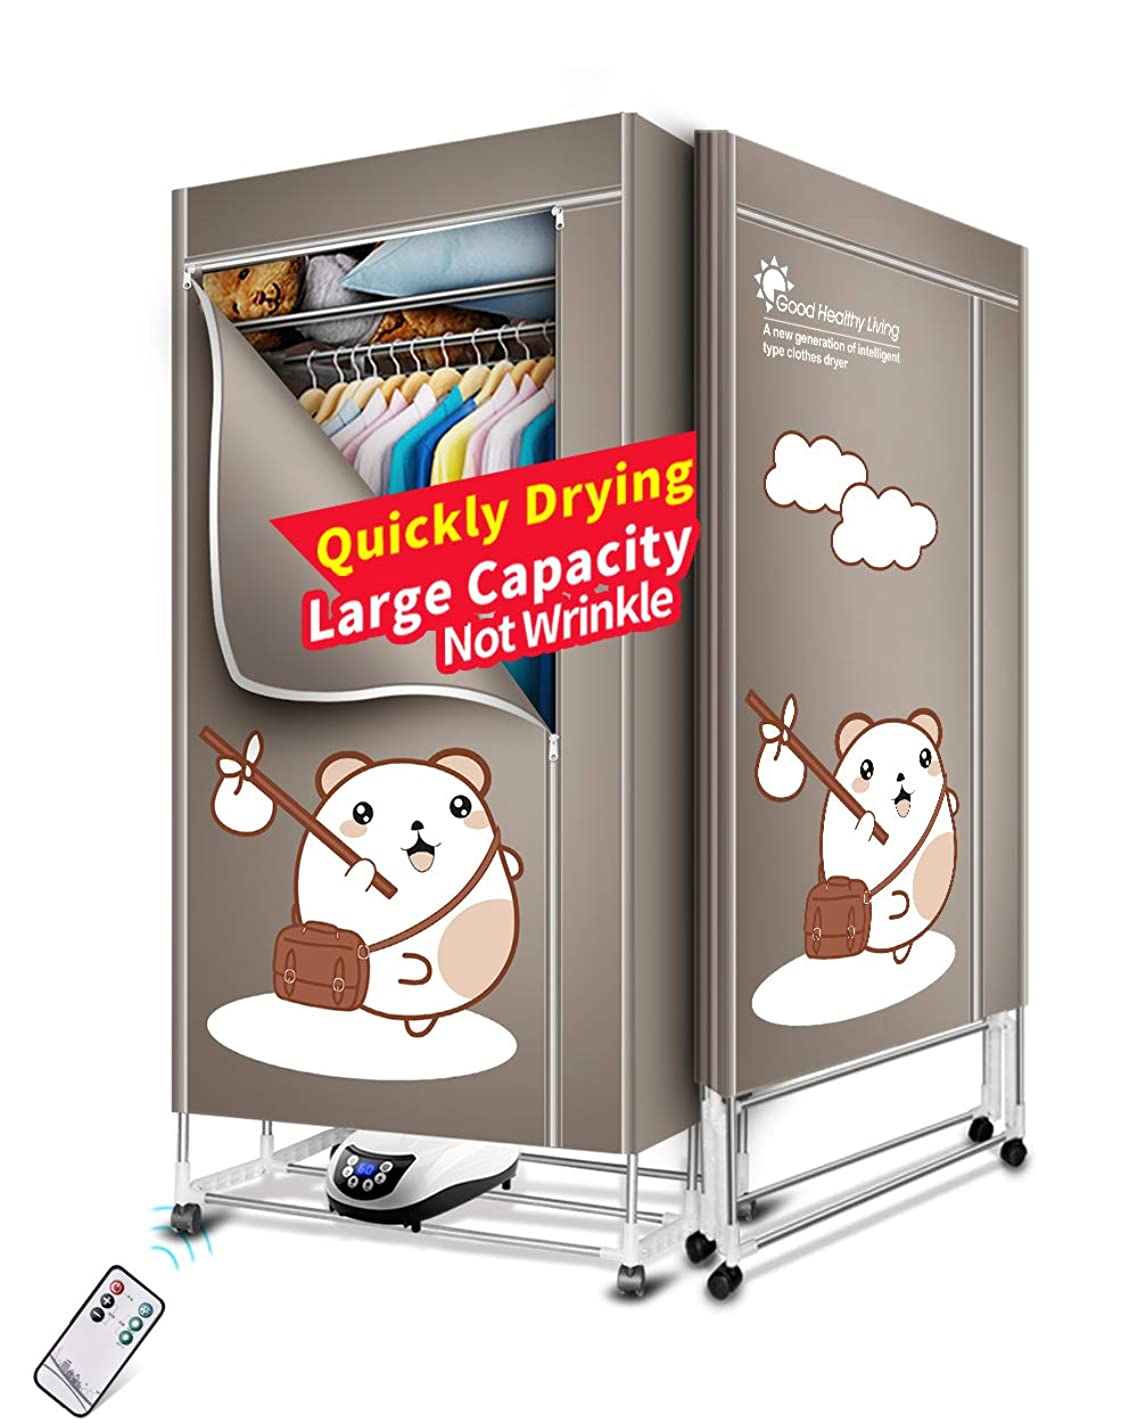 KASYDoFF Clothes Dryer Portable 3-Tier Foldable Clothes Drying Rack Energy Saving (Anion) 1.7 Meters Clothing Dryers Digital Automatic Timer with Remote Control for Apartment House